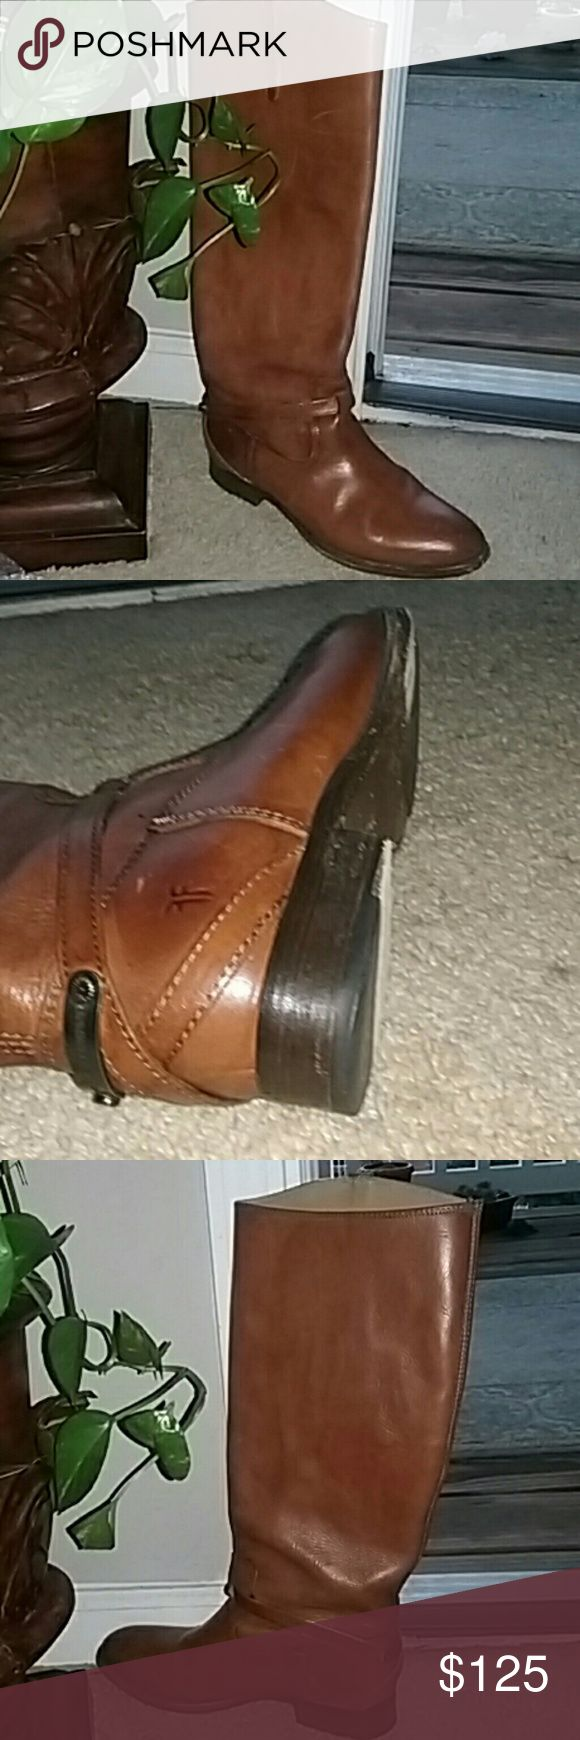 Frye Leather Boots Excellent used condition, some scratches and minor wear reflected in the price, sturdy, heavyweight, no side zippers, snugg fit, brick brown Frye Shoes Heeled Boots